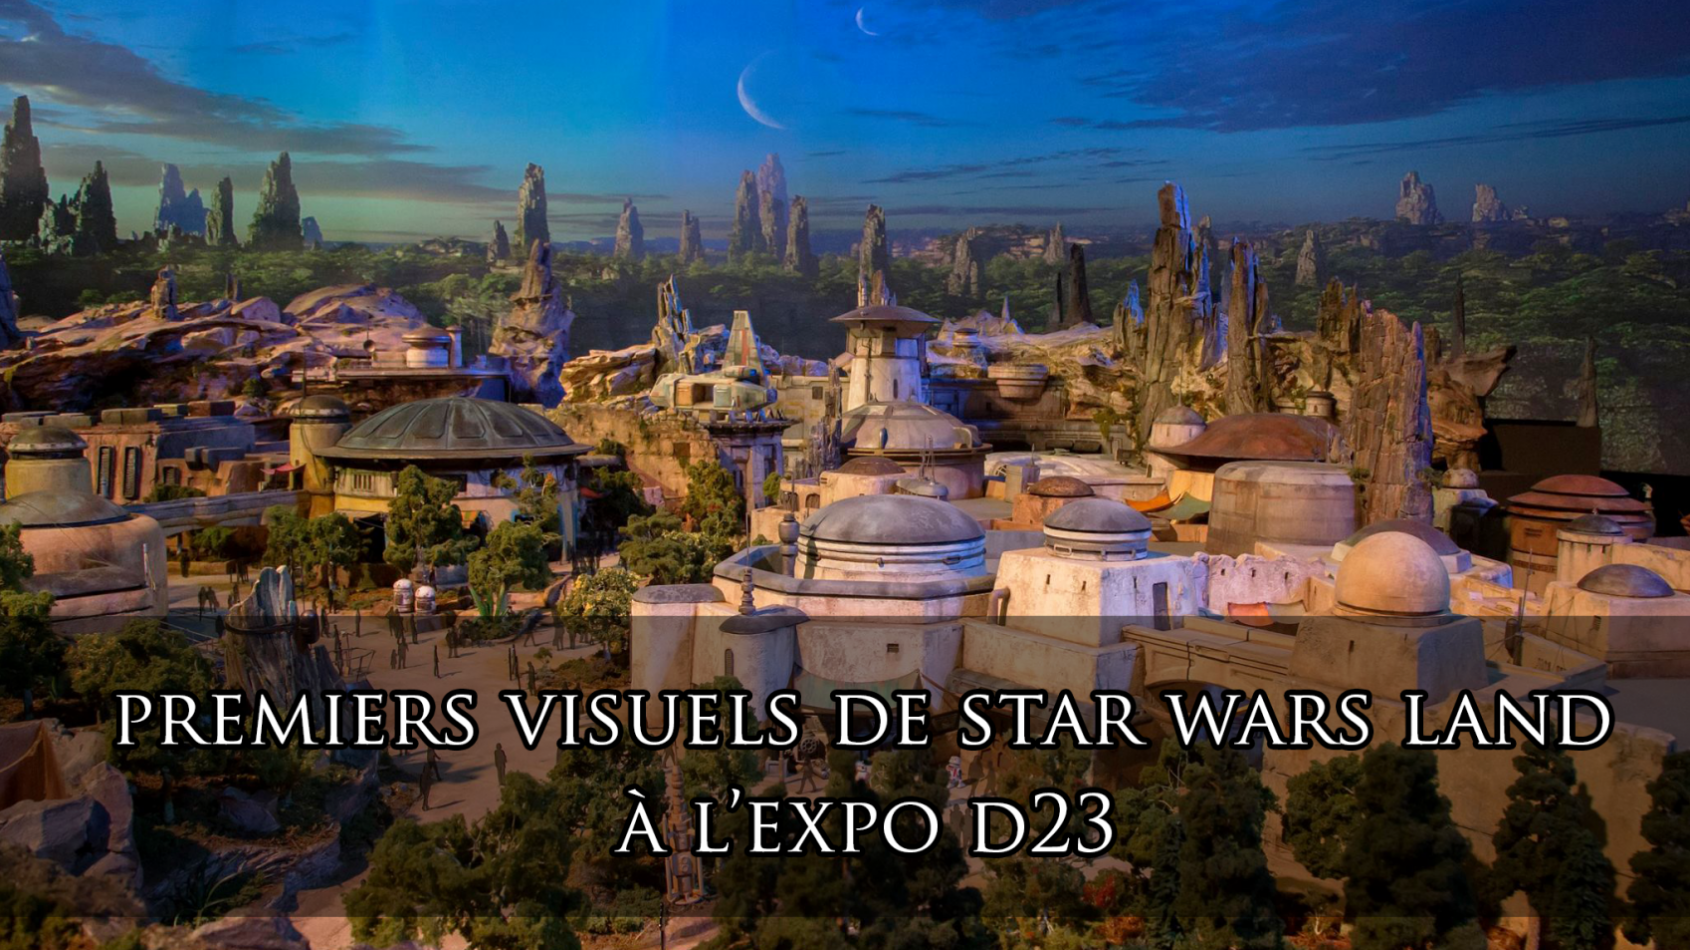 Premiers visuels de Star Wars Land en direct de la D23